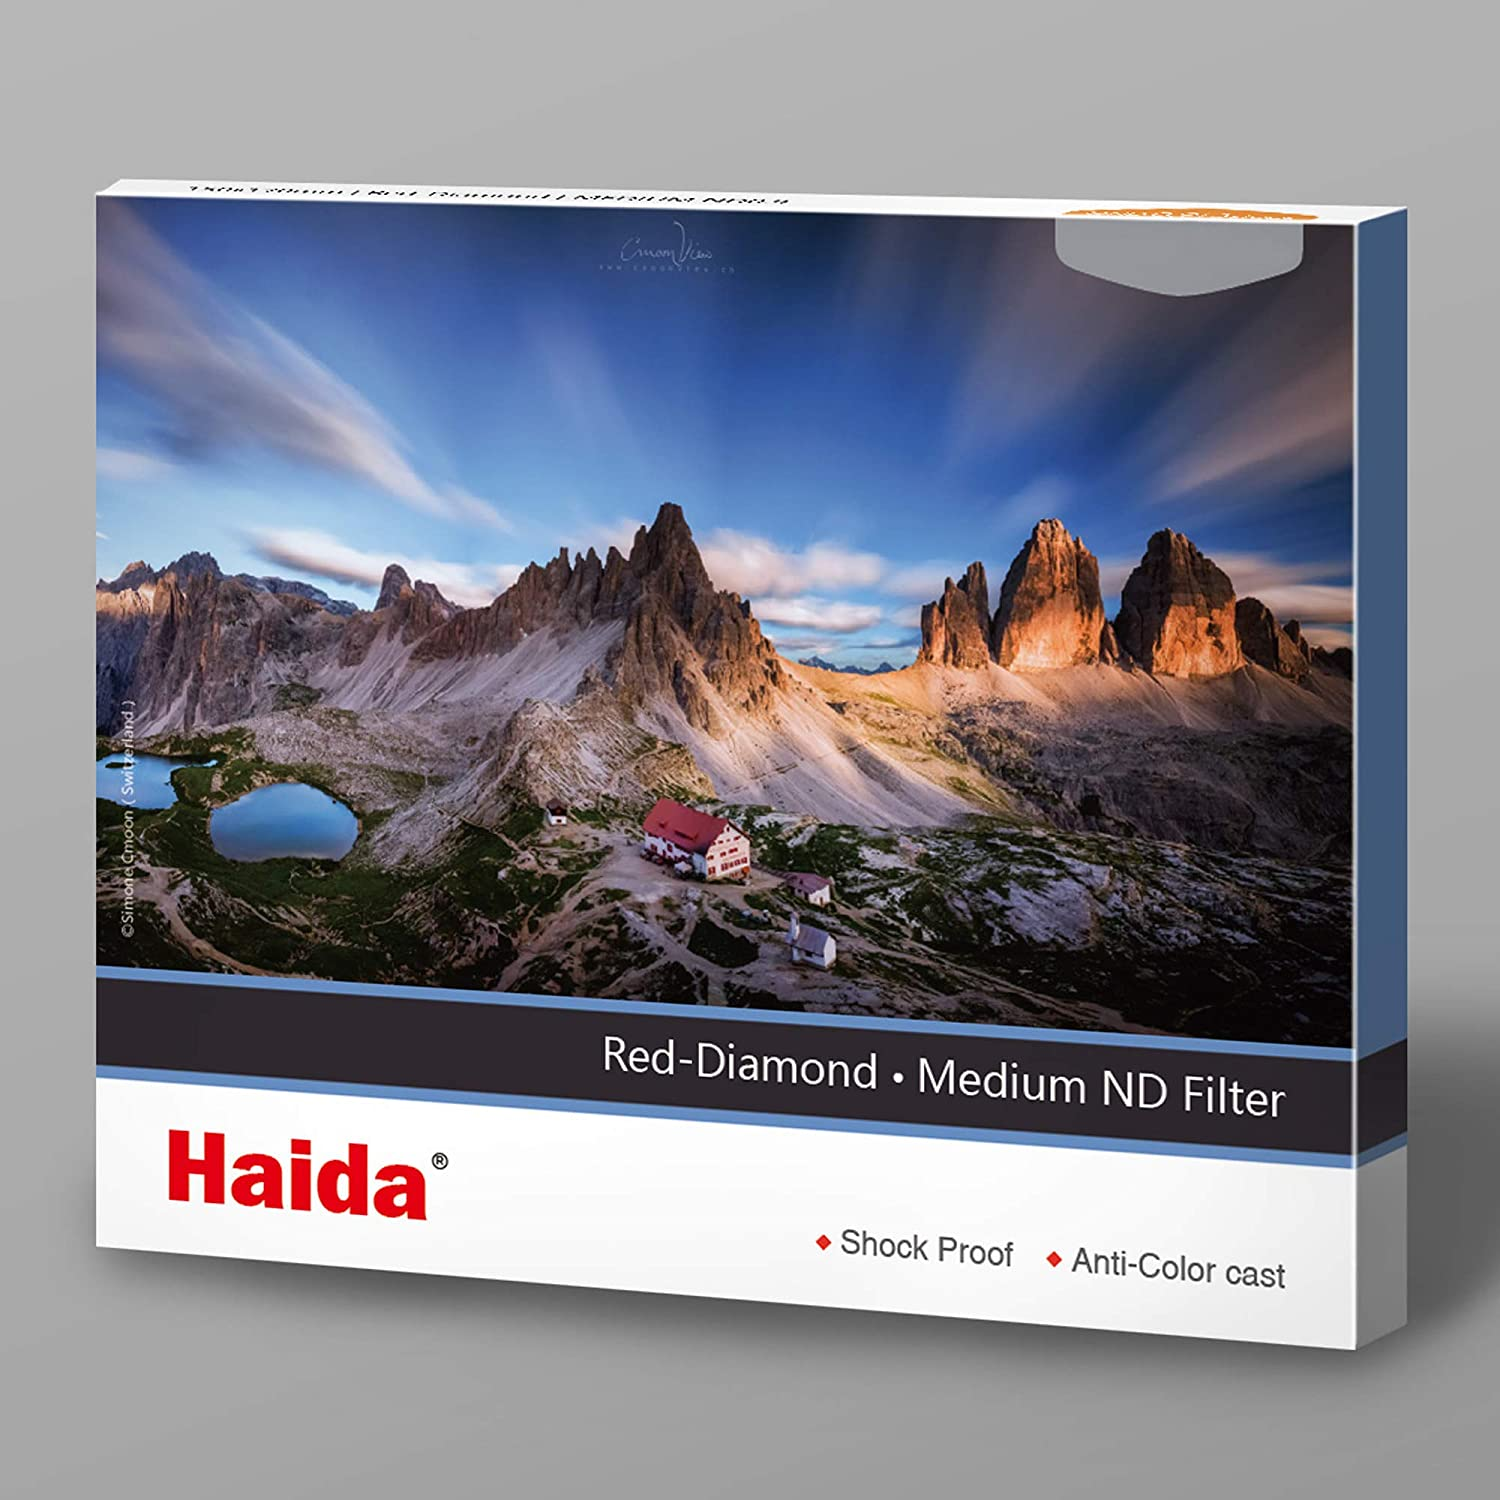 Haida Red Diamond Shockproof 150mm Soft Grad ND1.5 Filter ND GND 150 x 170mm Double Strength Optical Glass MC 5 Stop ND32 HD4384